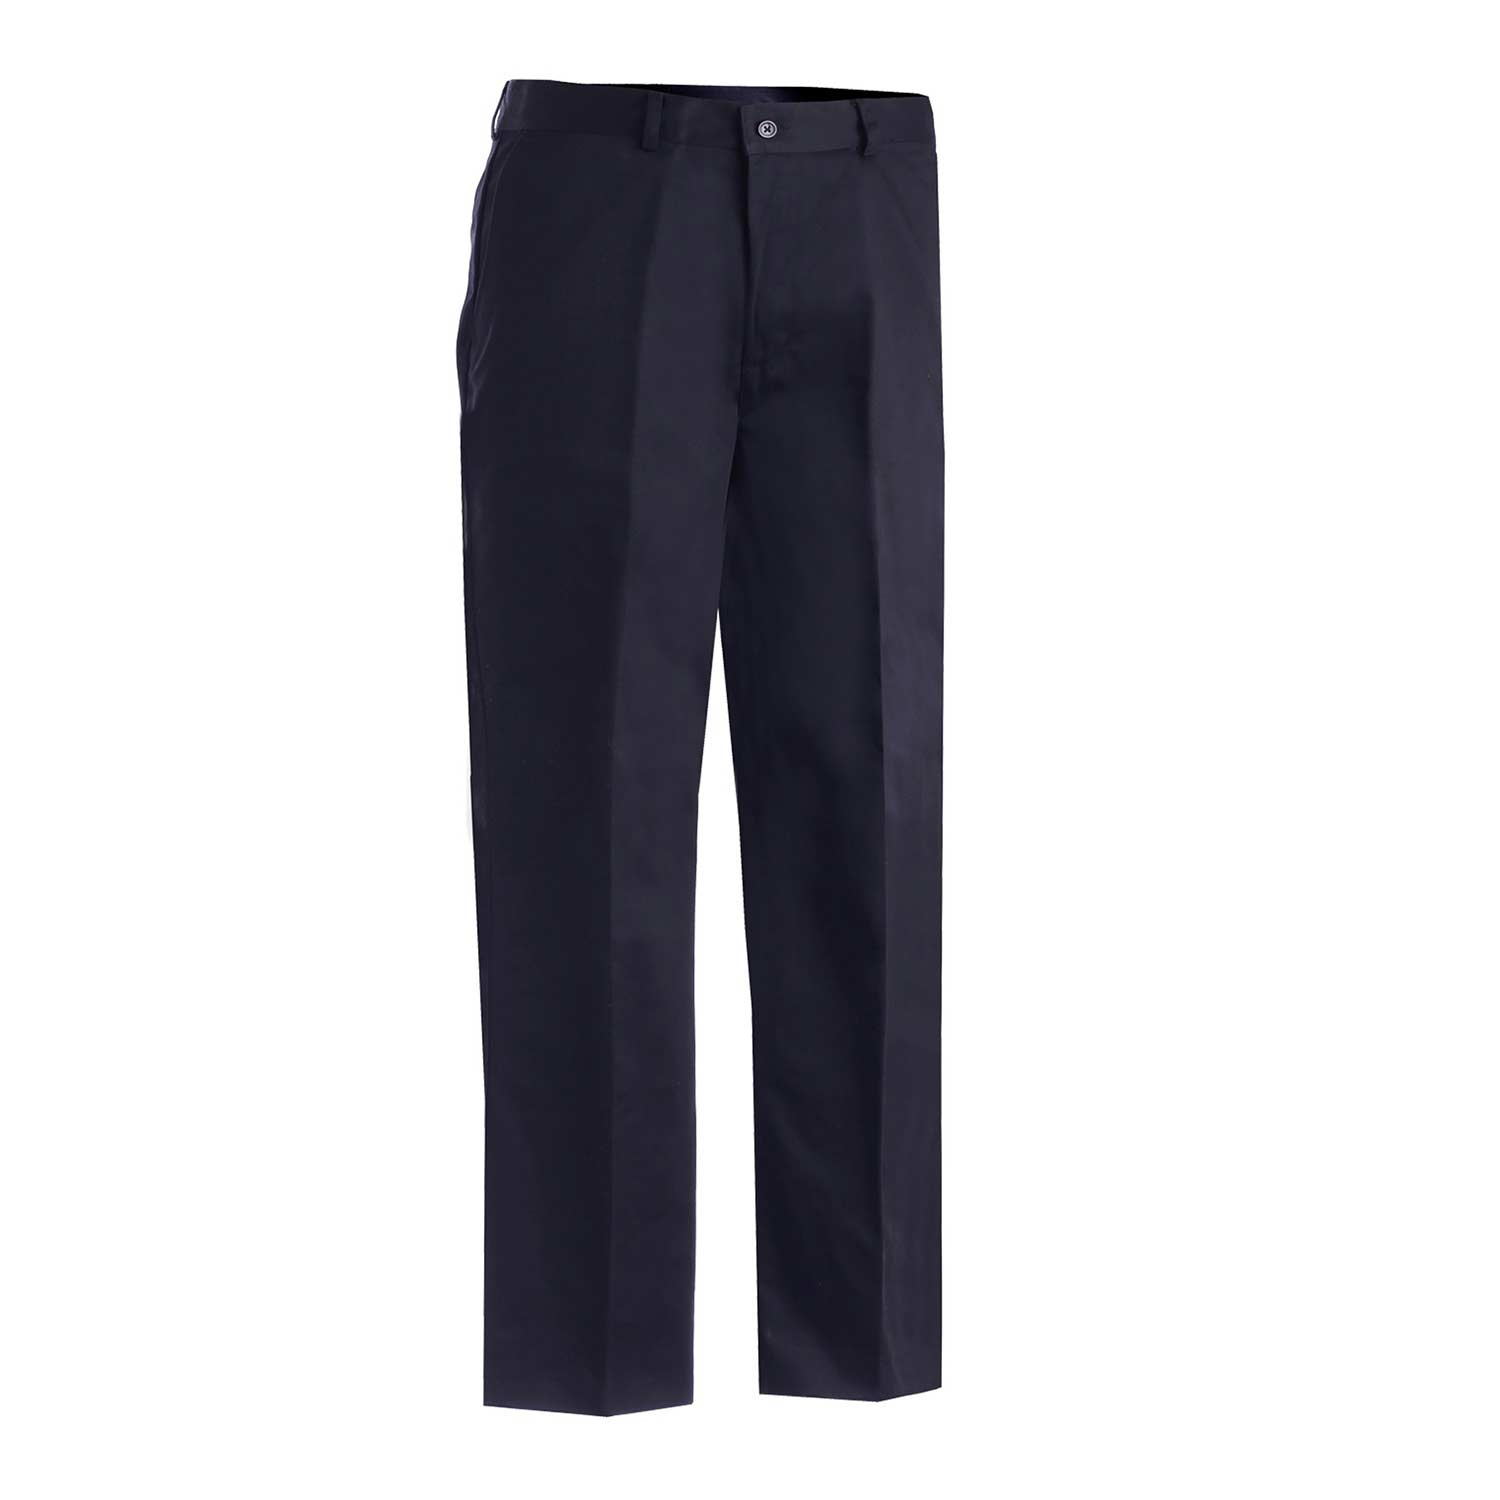 Edwards Men's Easy Fit Chino Flat Front Pant